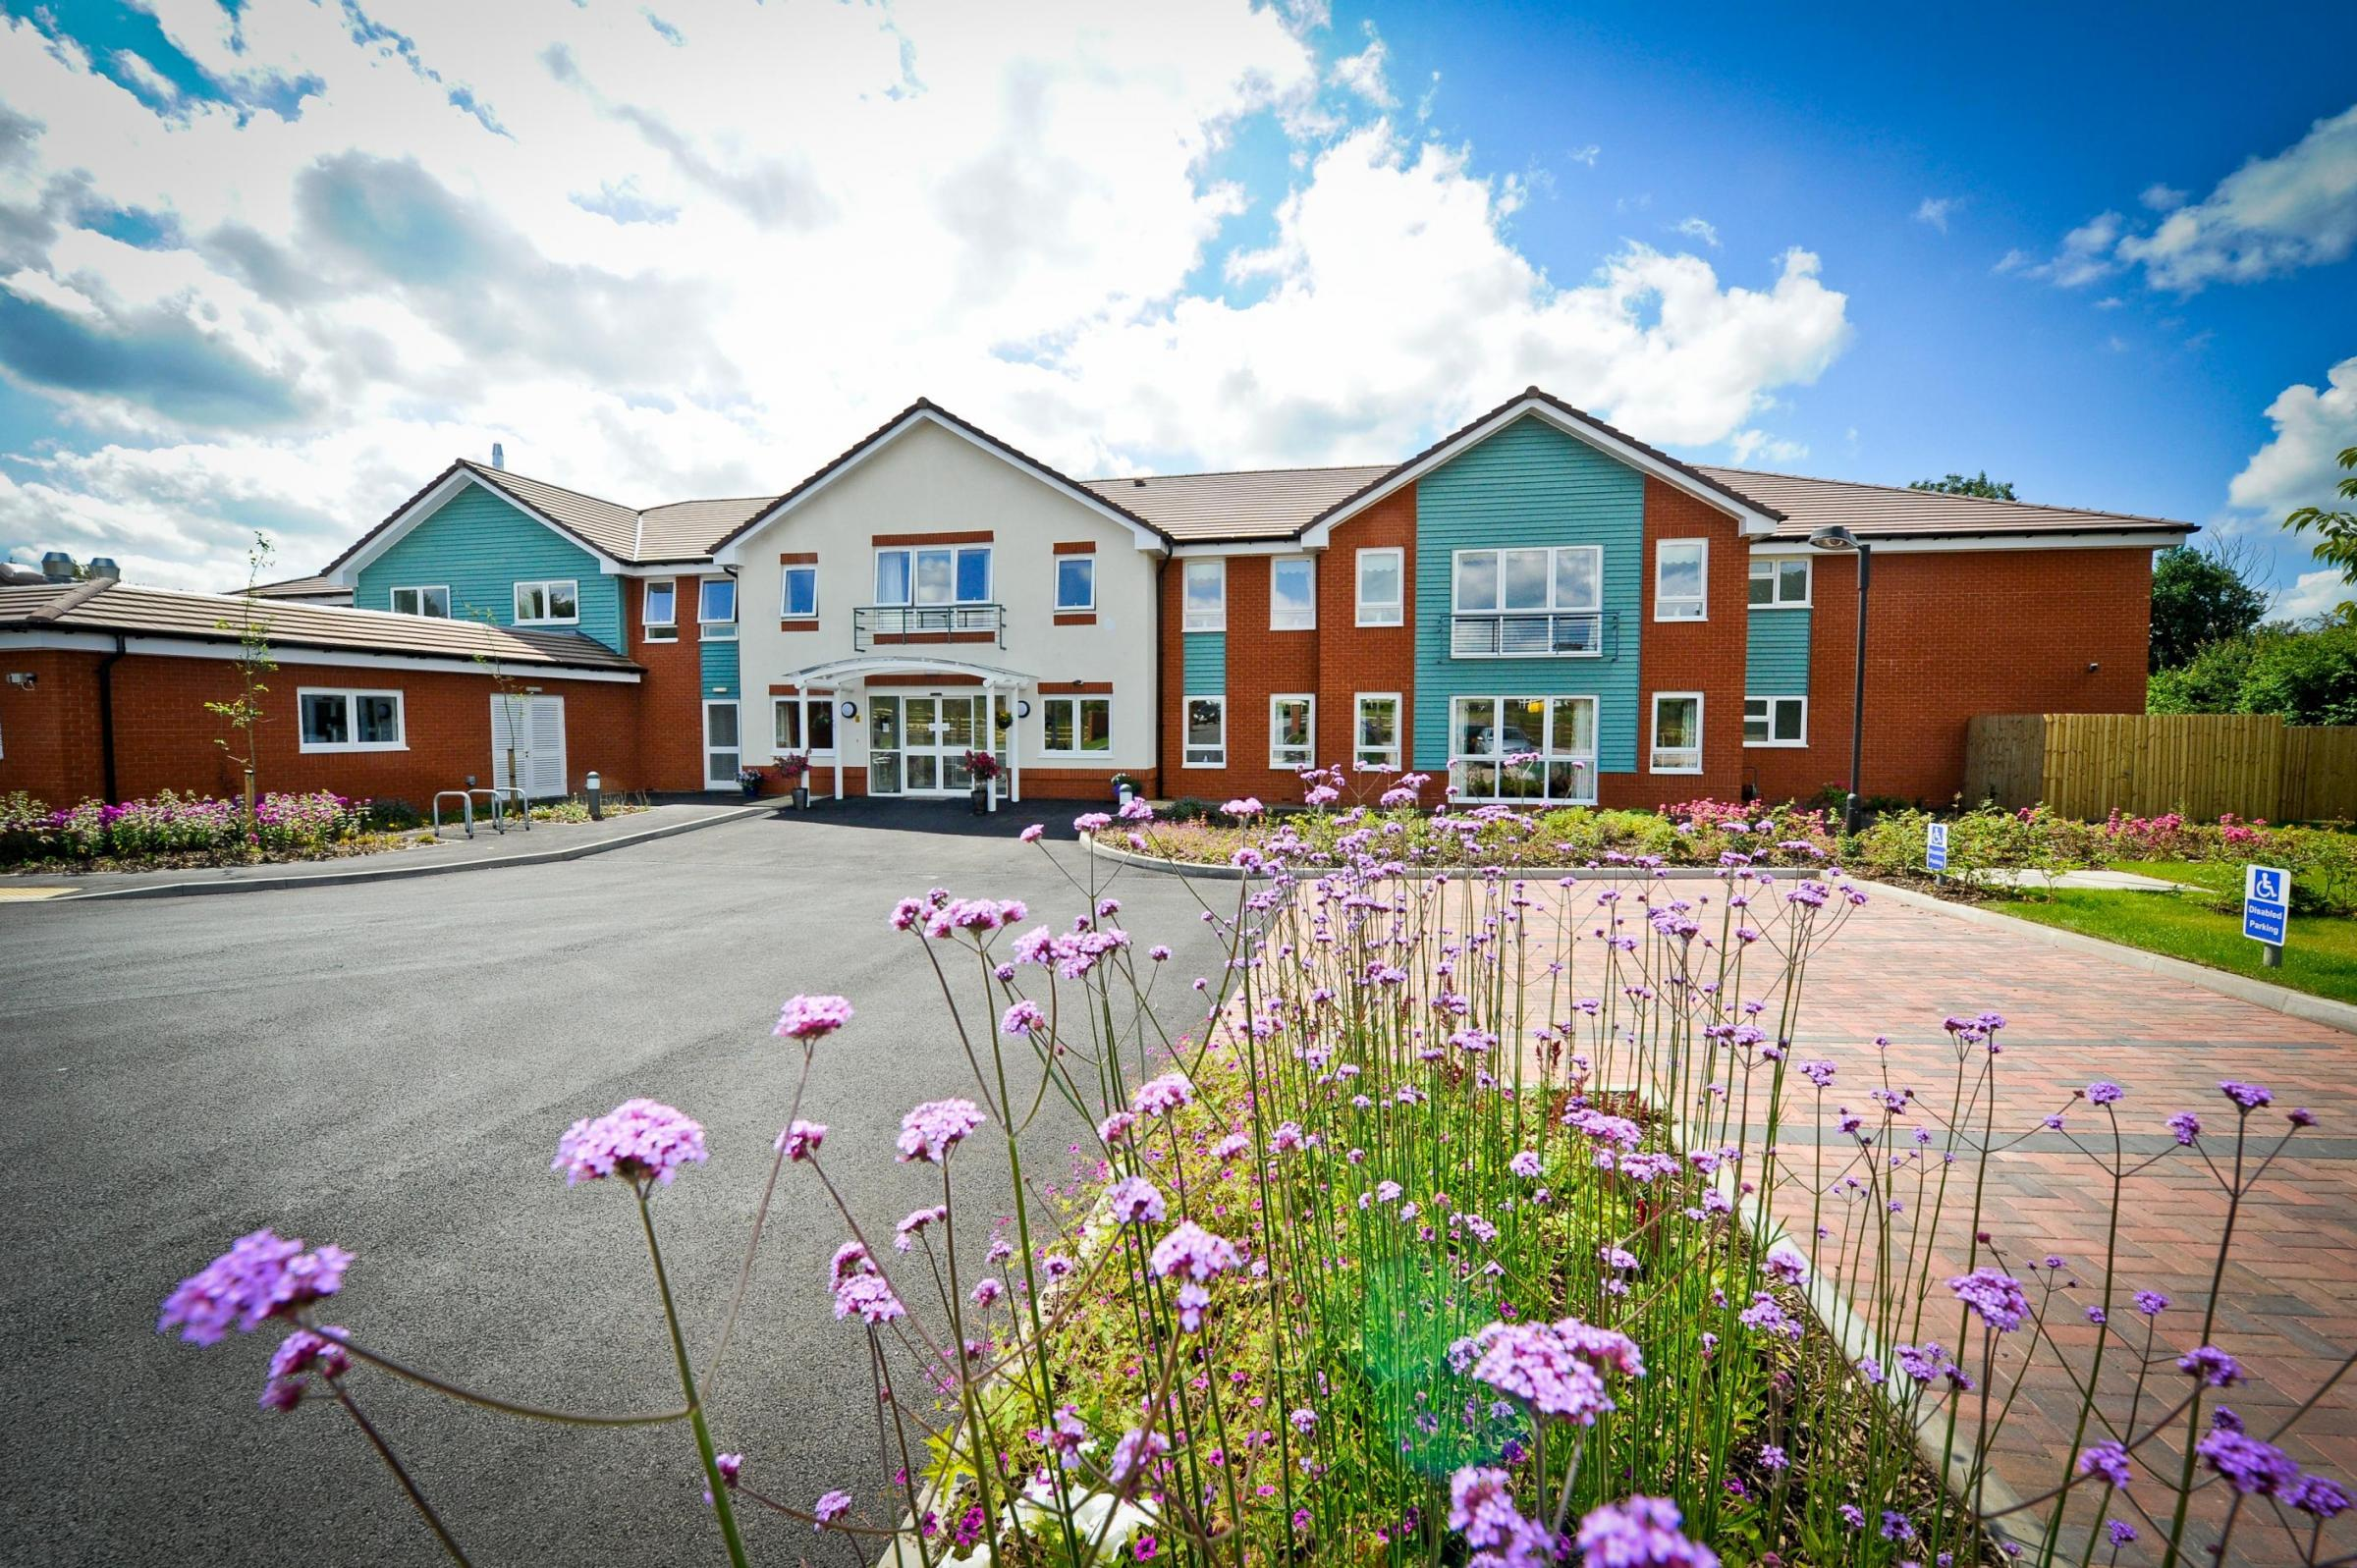 Hagley Place in Ludlow performs strongly in nationwide survey of care home residents